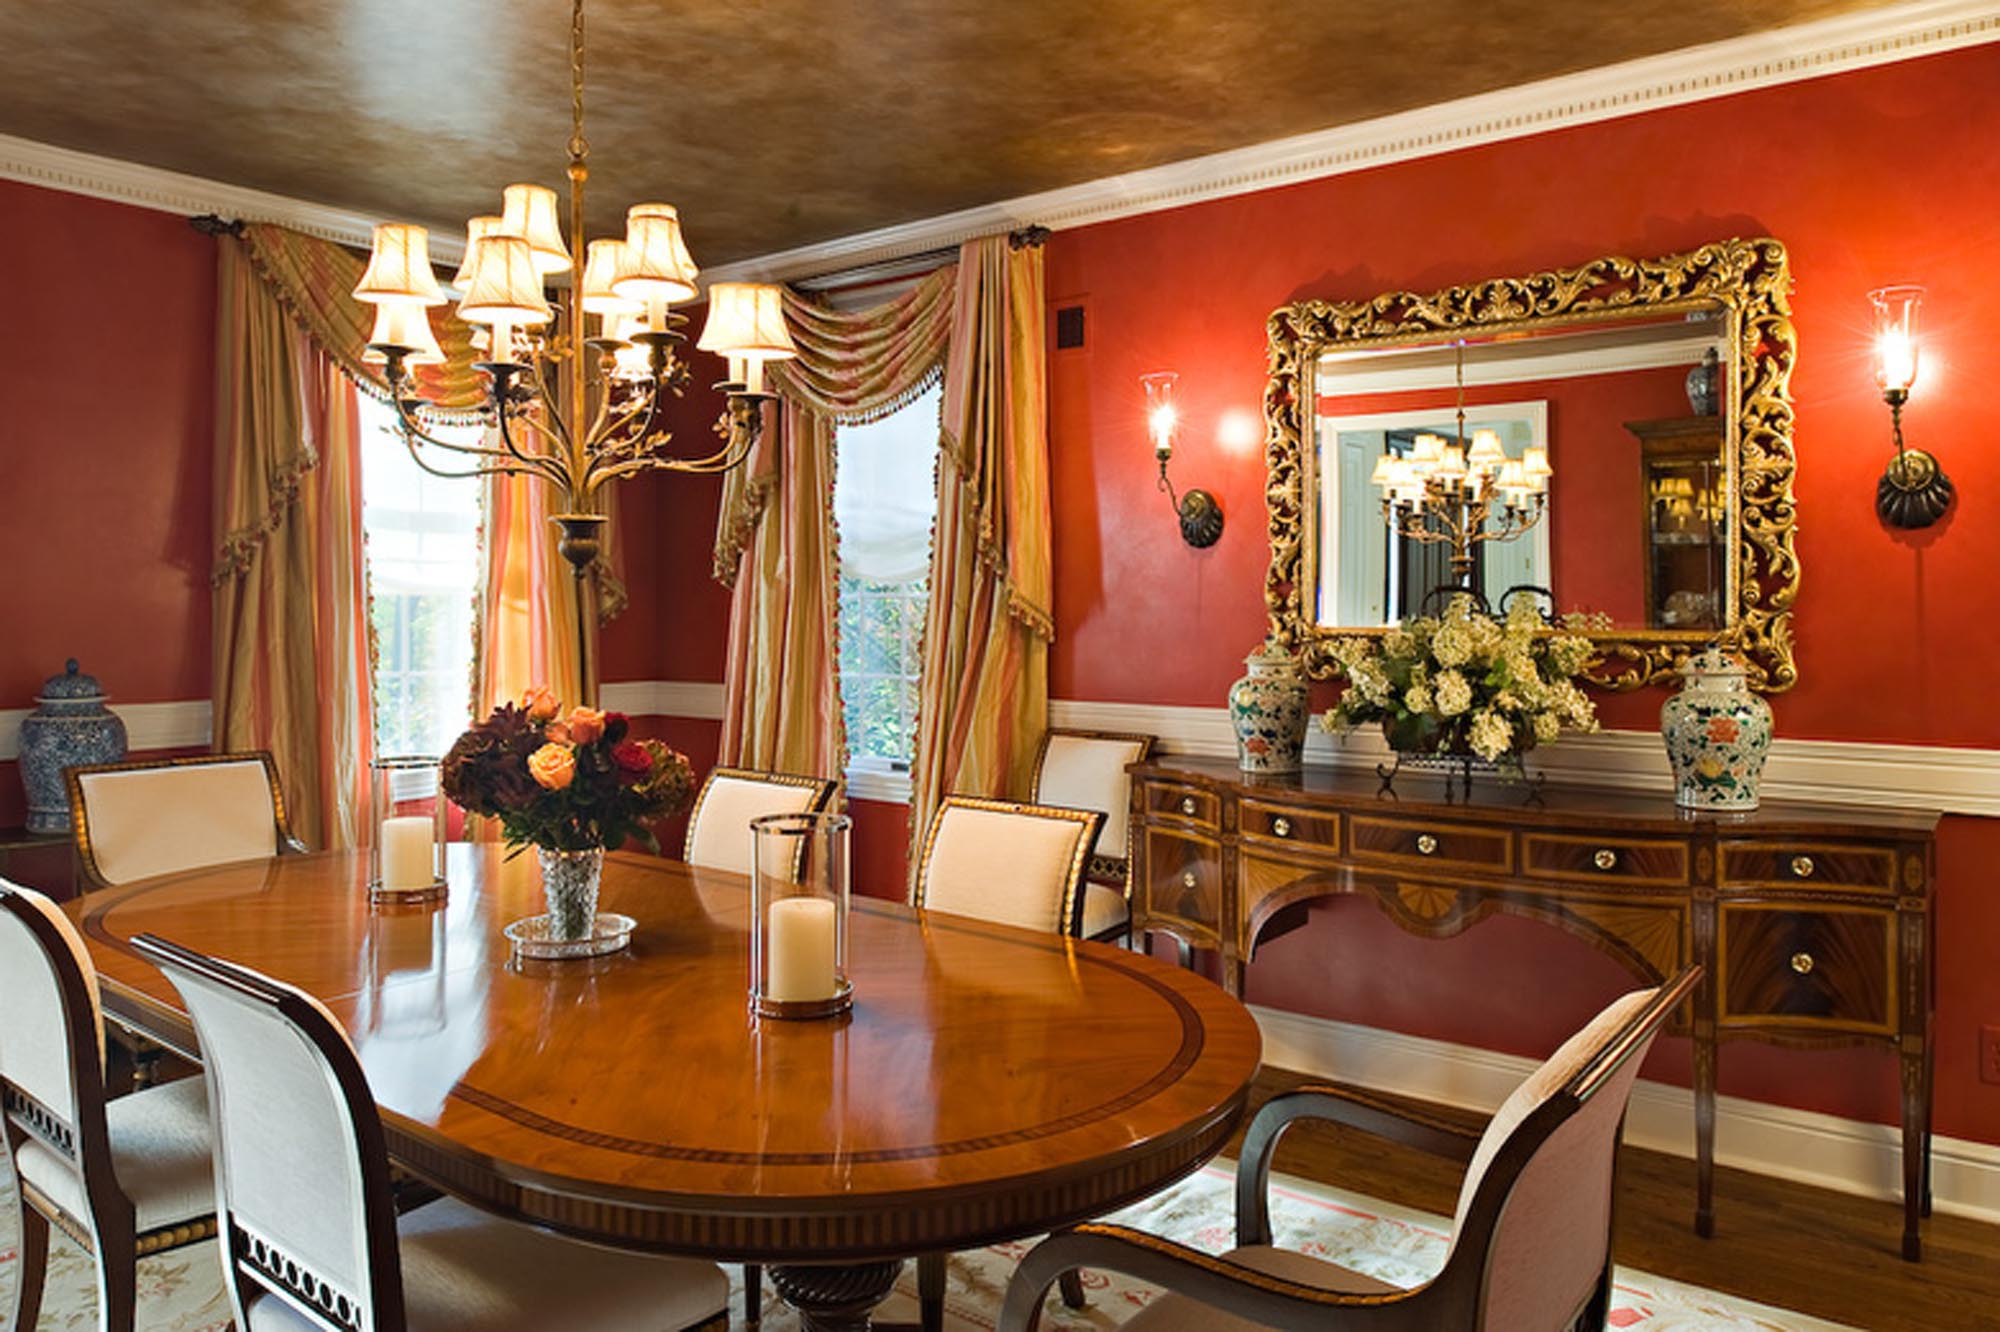 Warm dining area in red paint with table for six and vintage chandelier